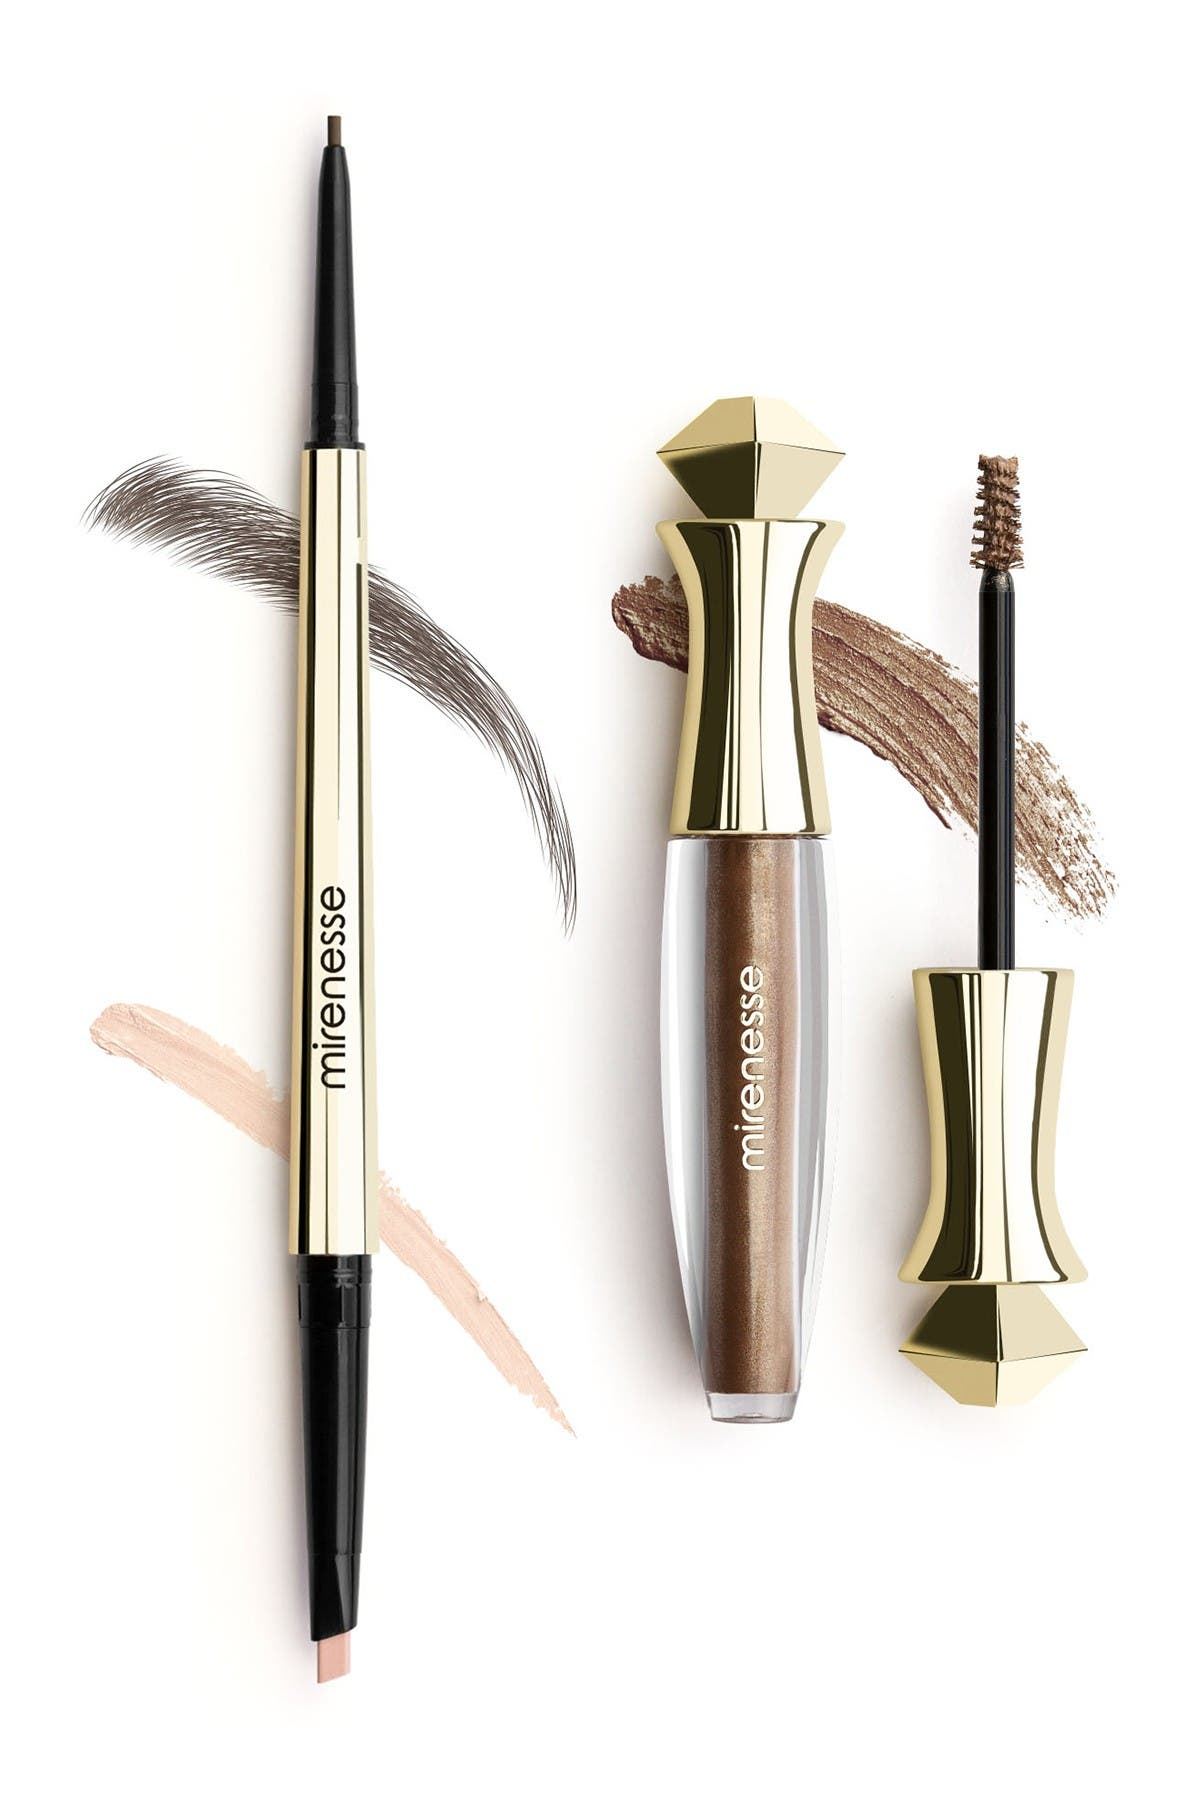 Image of Mirenesse All Day Micro Brow Pencil + Shaping Mascara Set - 3.Cappuccino